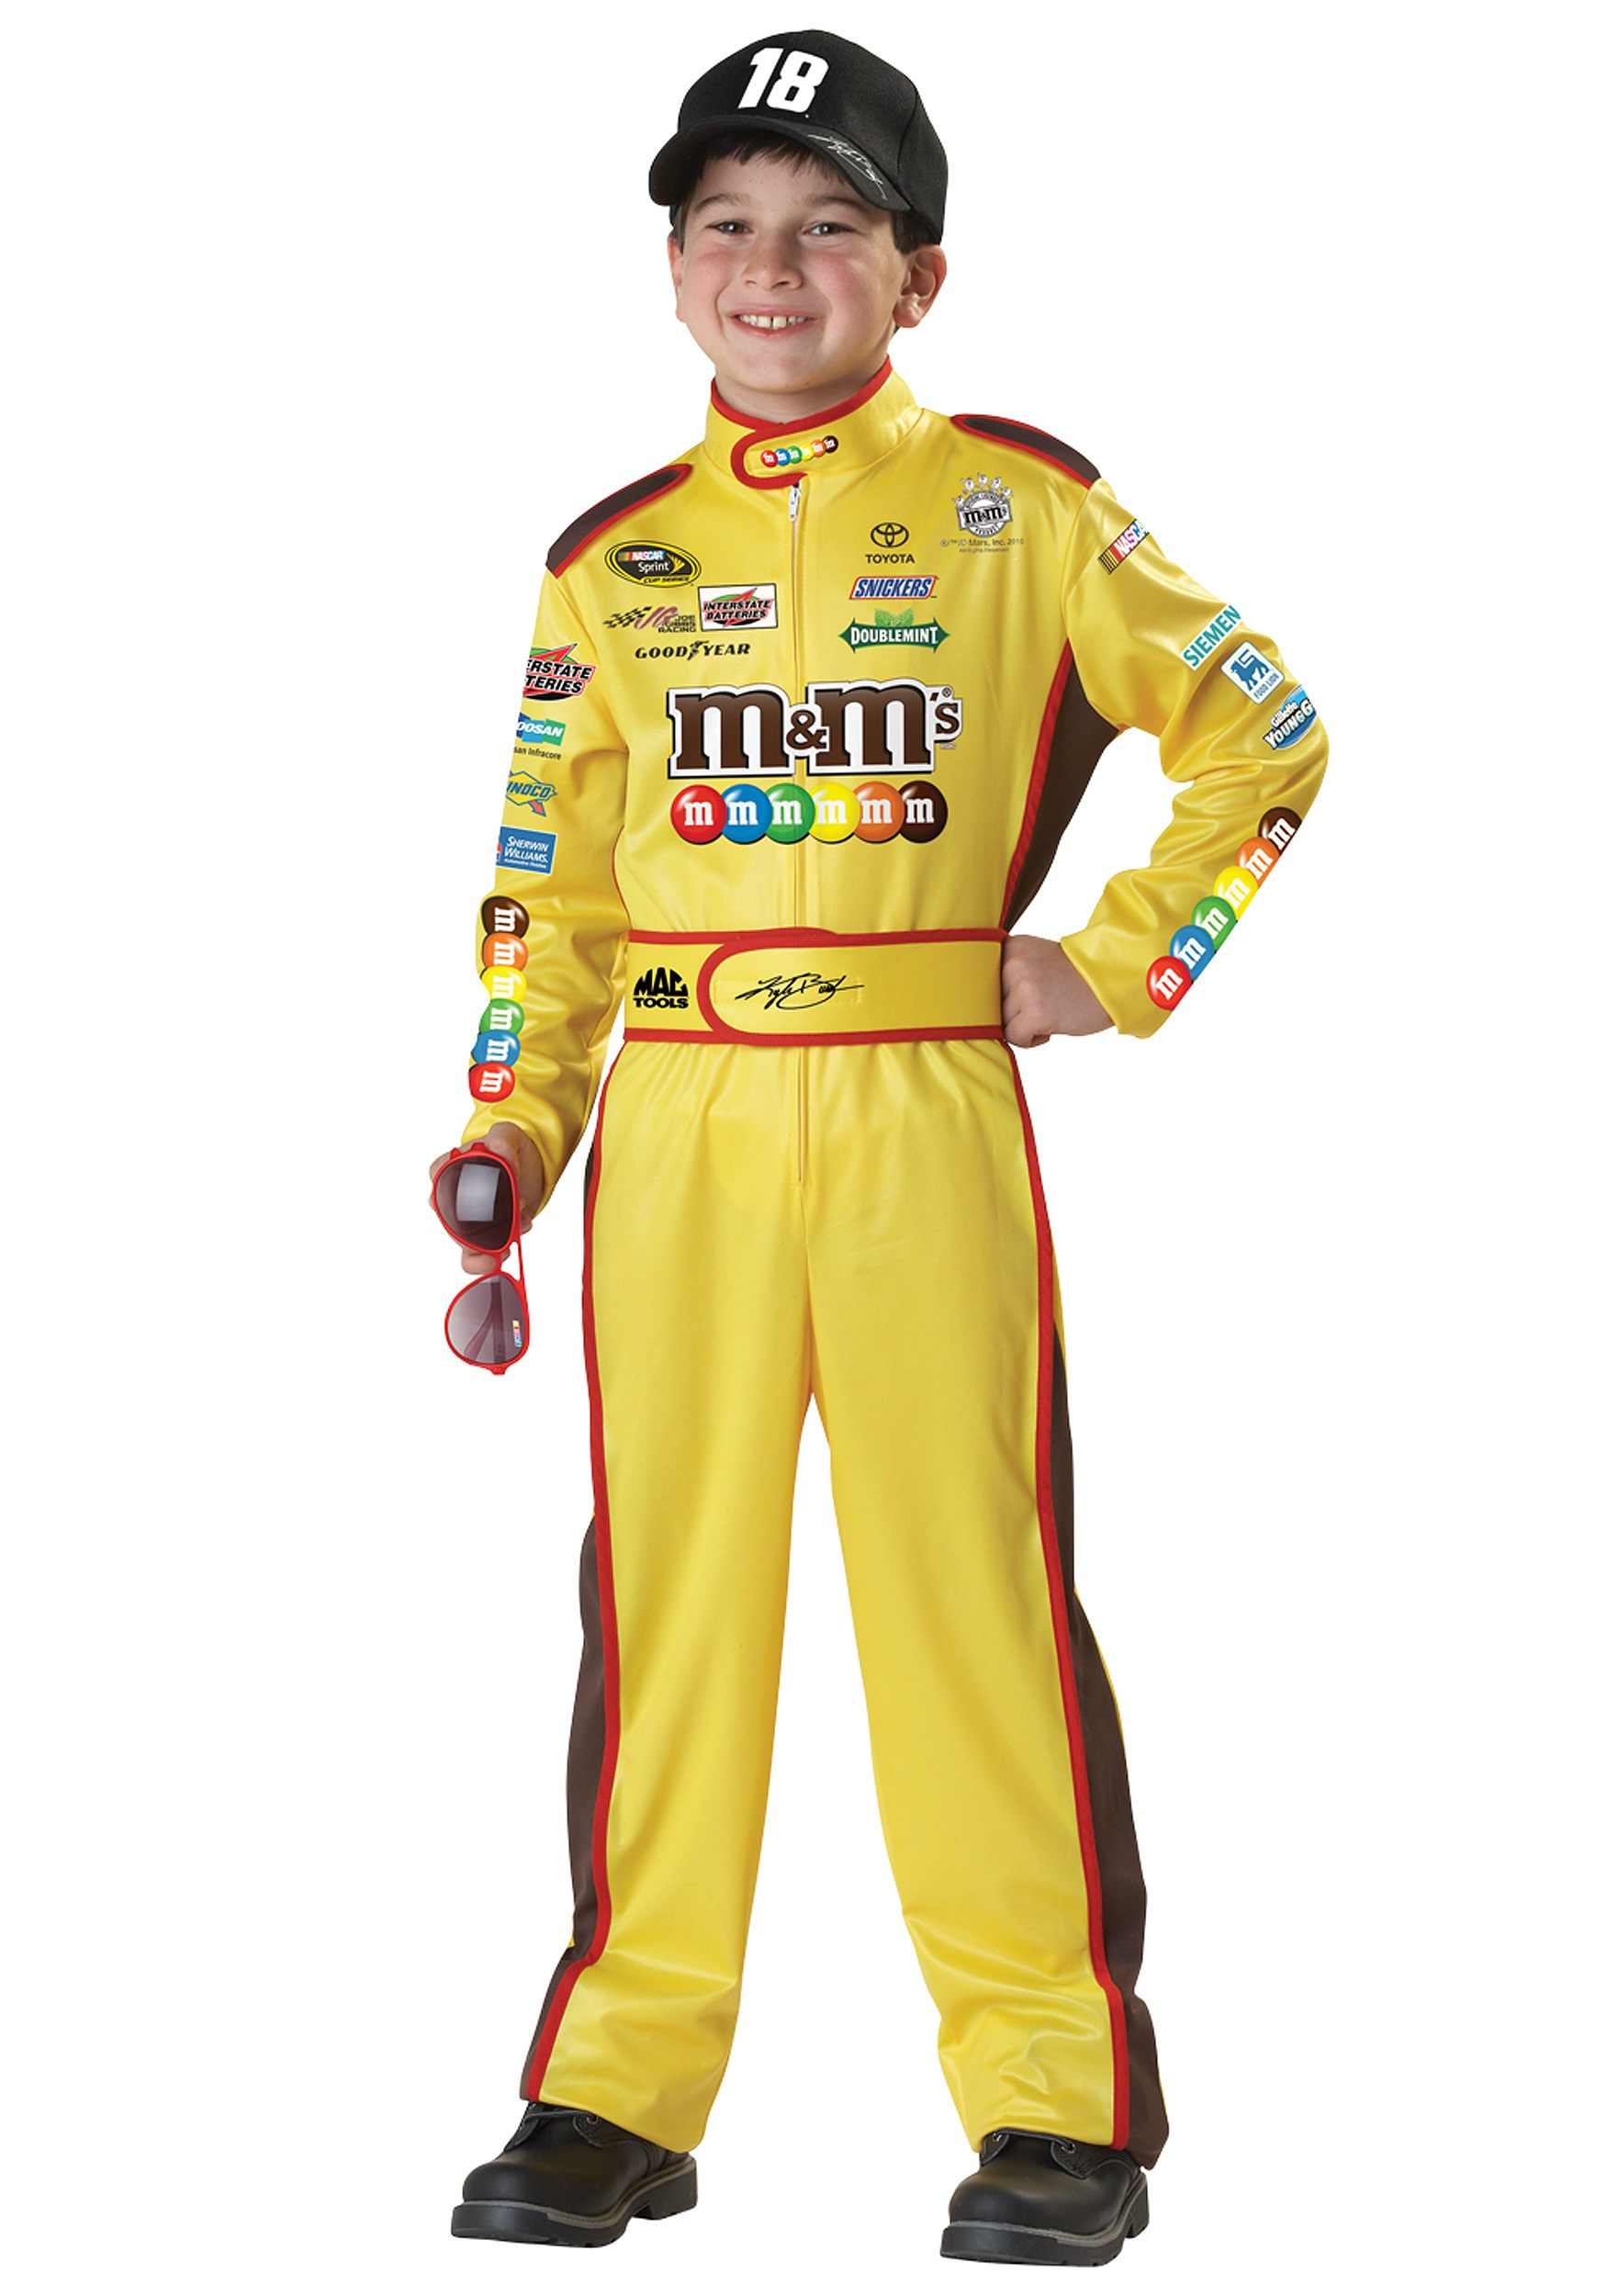 Child Kyle Busch Costume  sc 1 st  Halloween Costumes & Child Kyle Busch Costume - Halloween Costume Ideas 2018